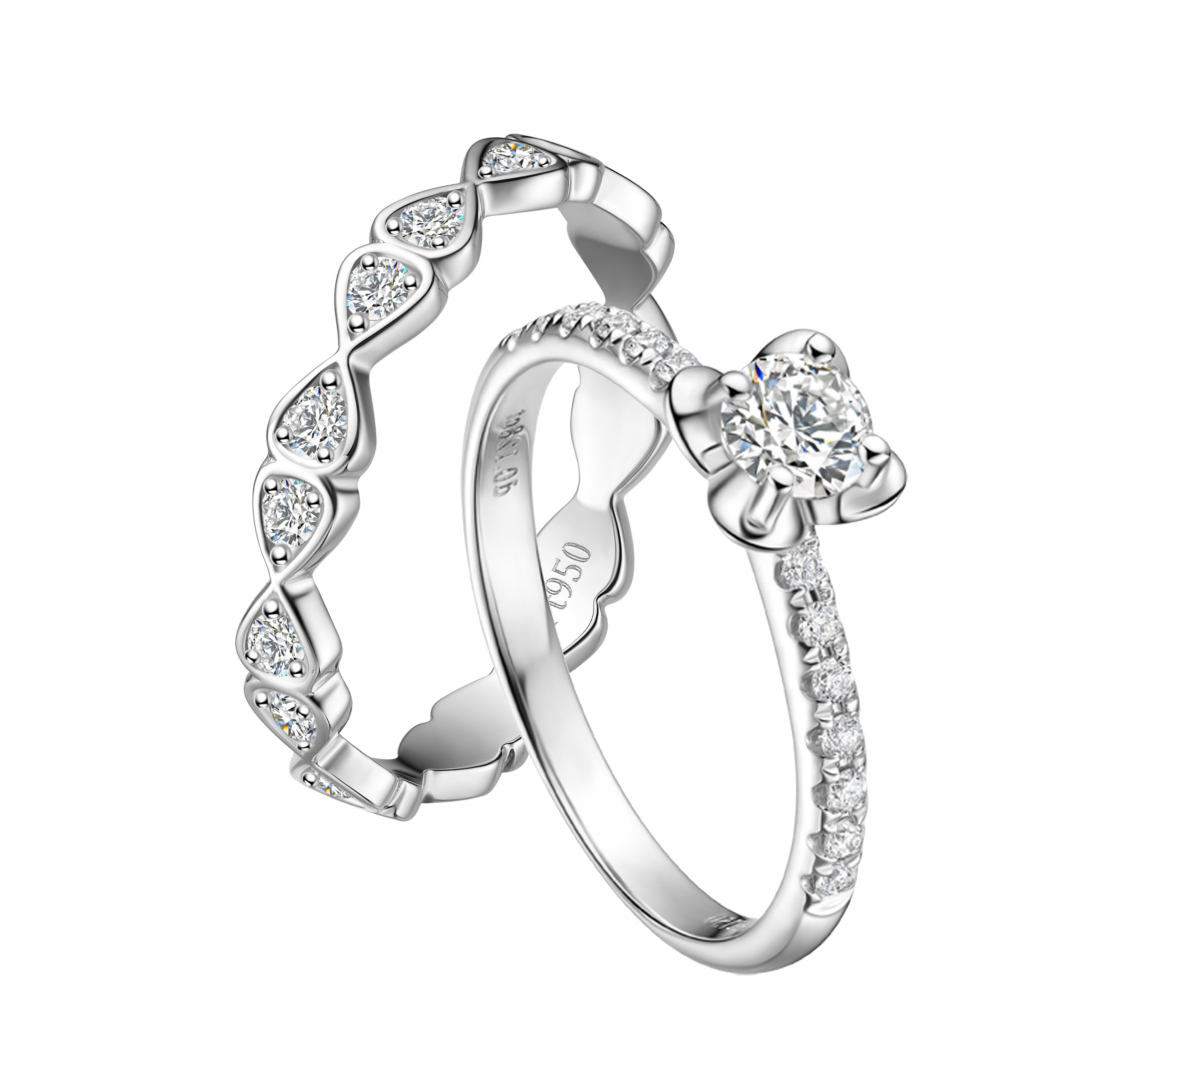 Lily of the Valley rings